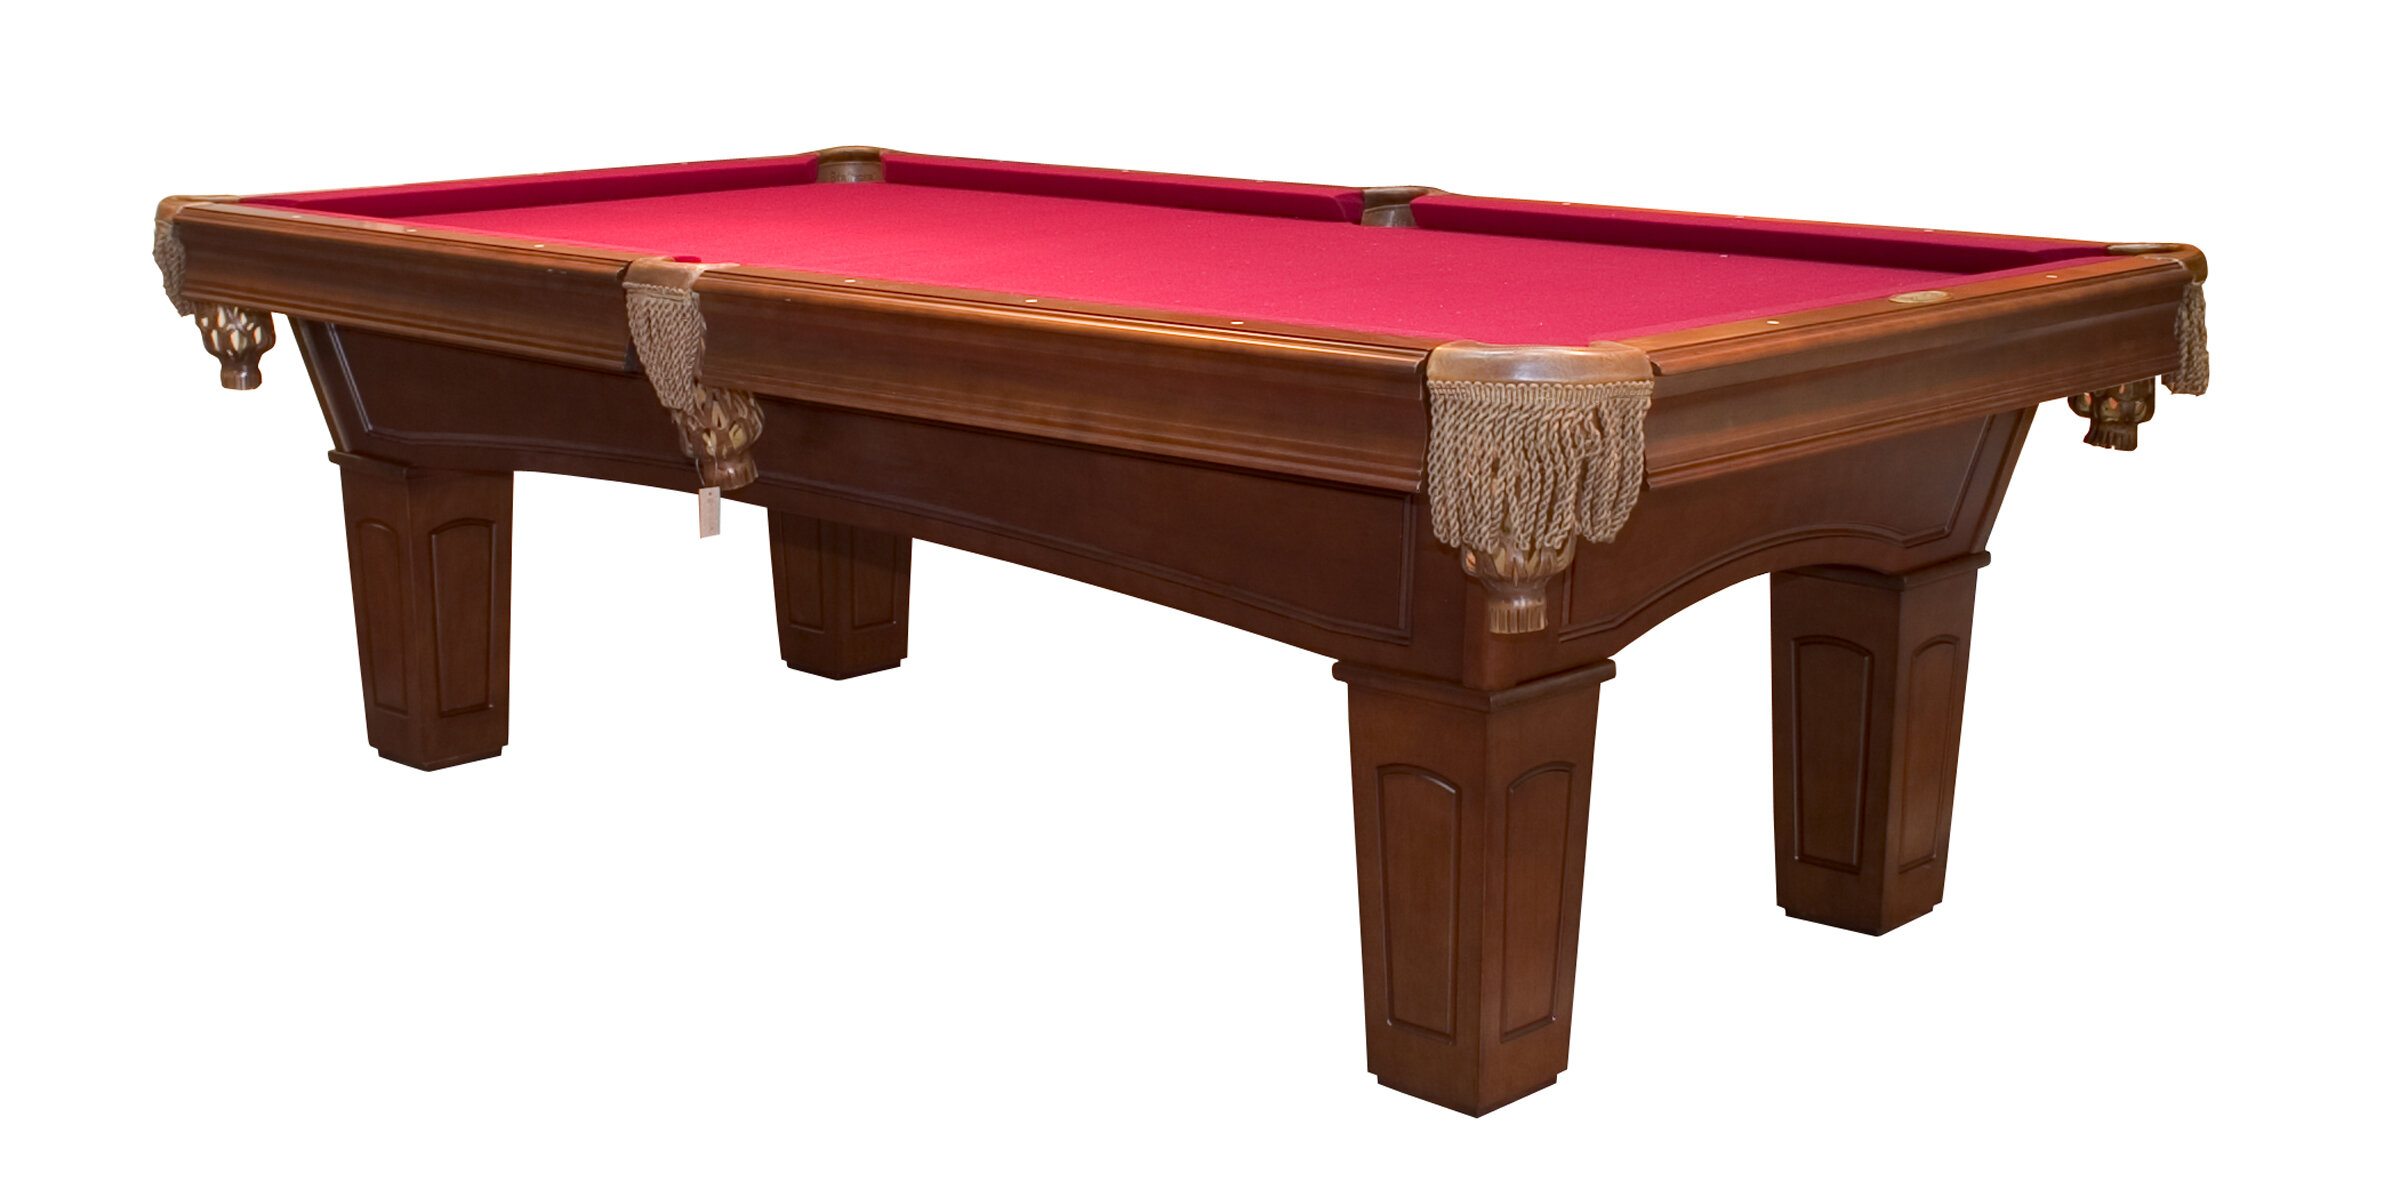 Beringer Sierra 8' Slate Pool Table | Wayfair